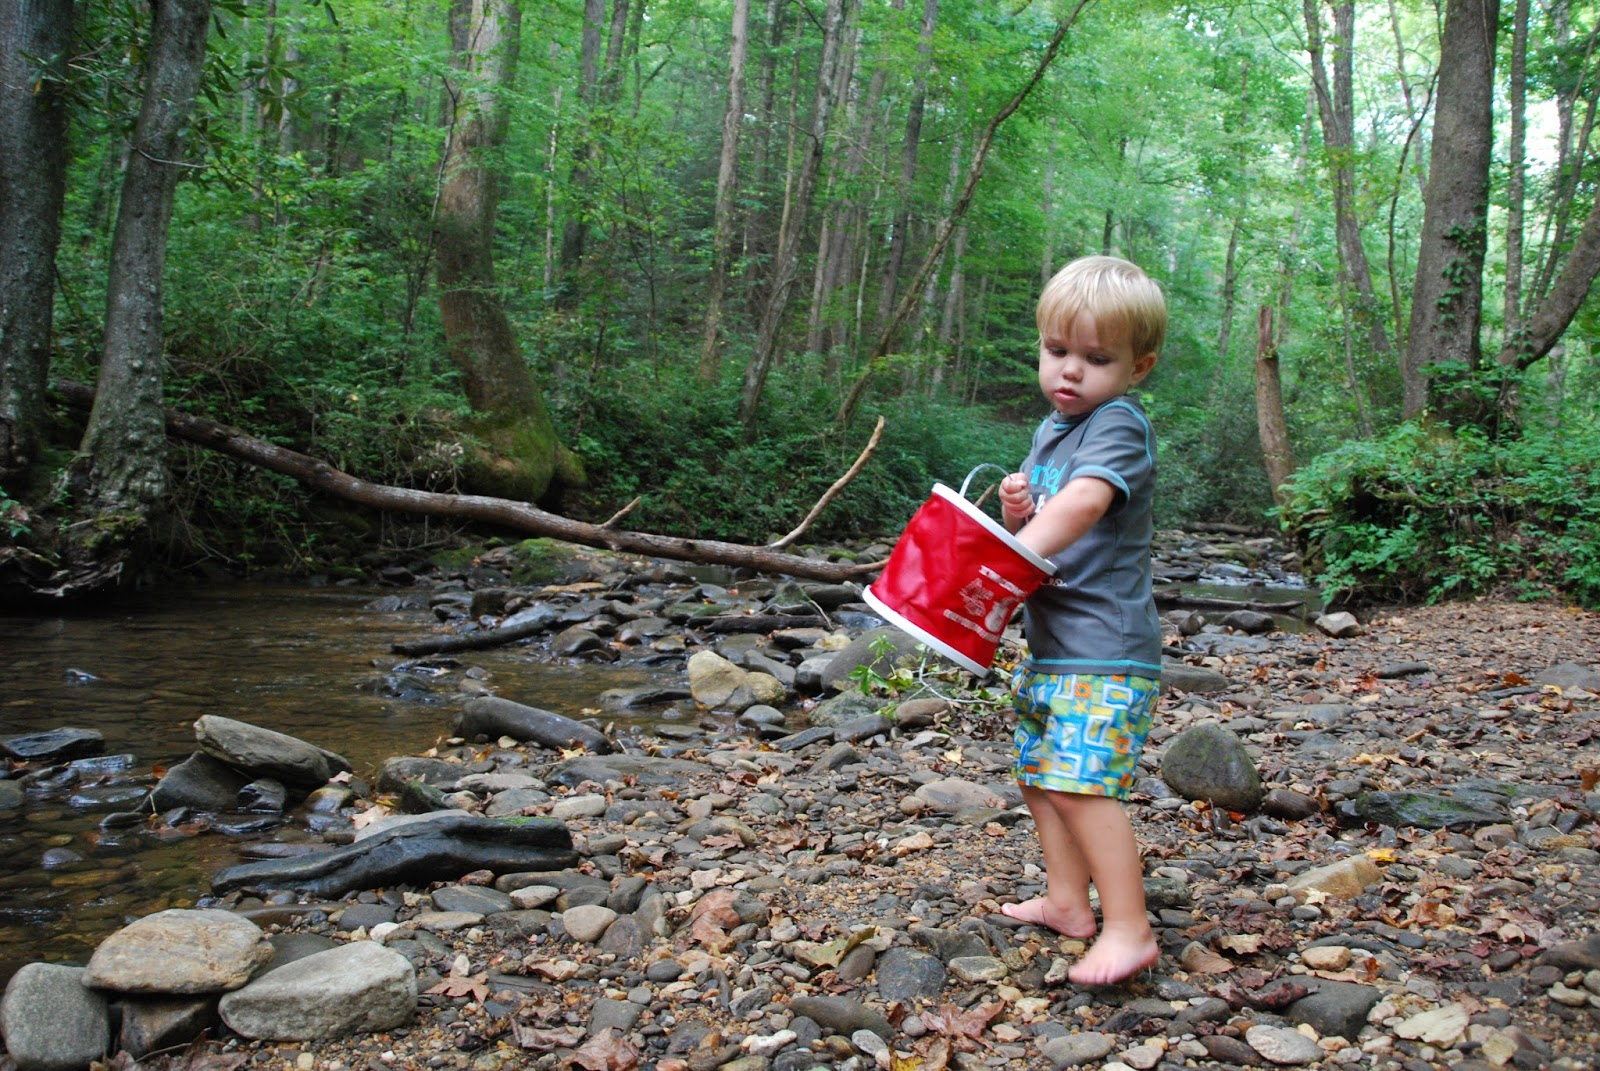 camp single parents When i first became a single parent, nearly five and half years ago, i felt  first  overnight, and then multi-night car camping trips gradually filled.